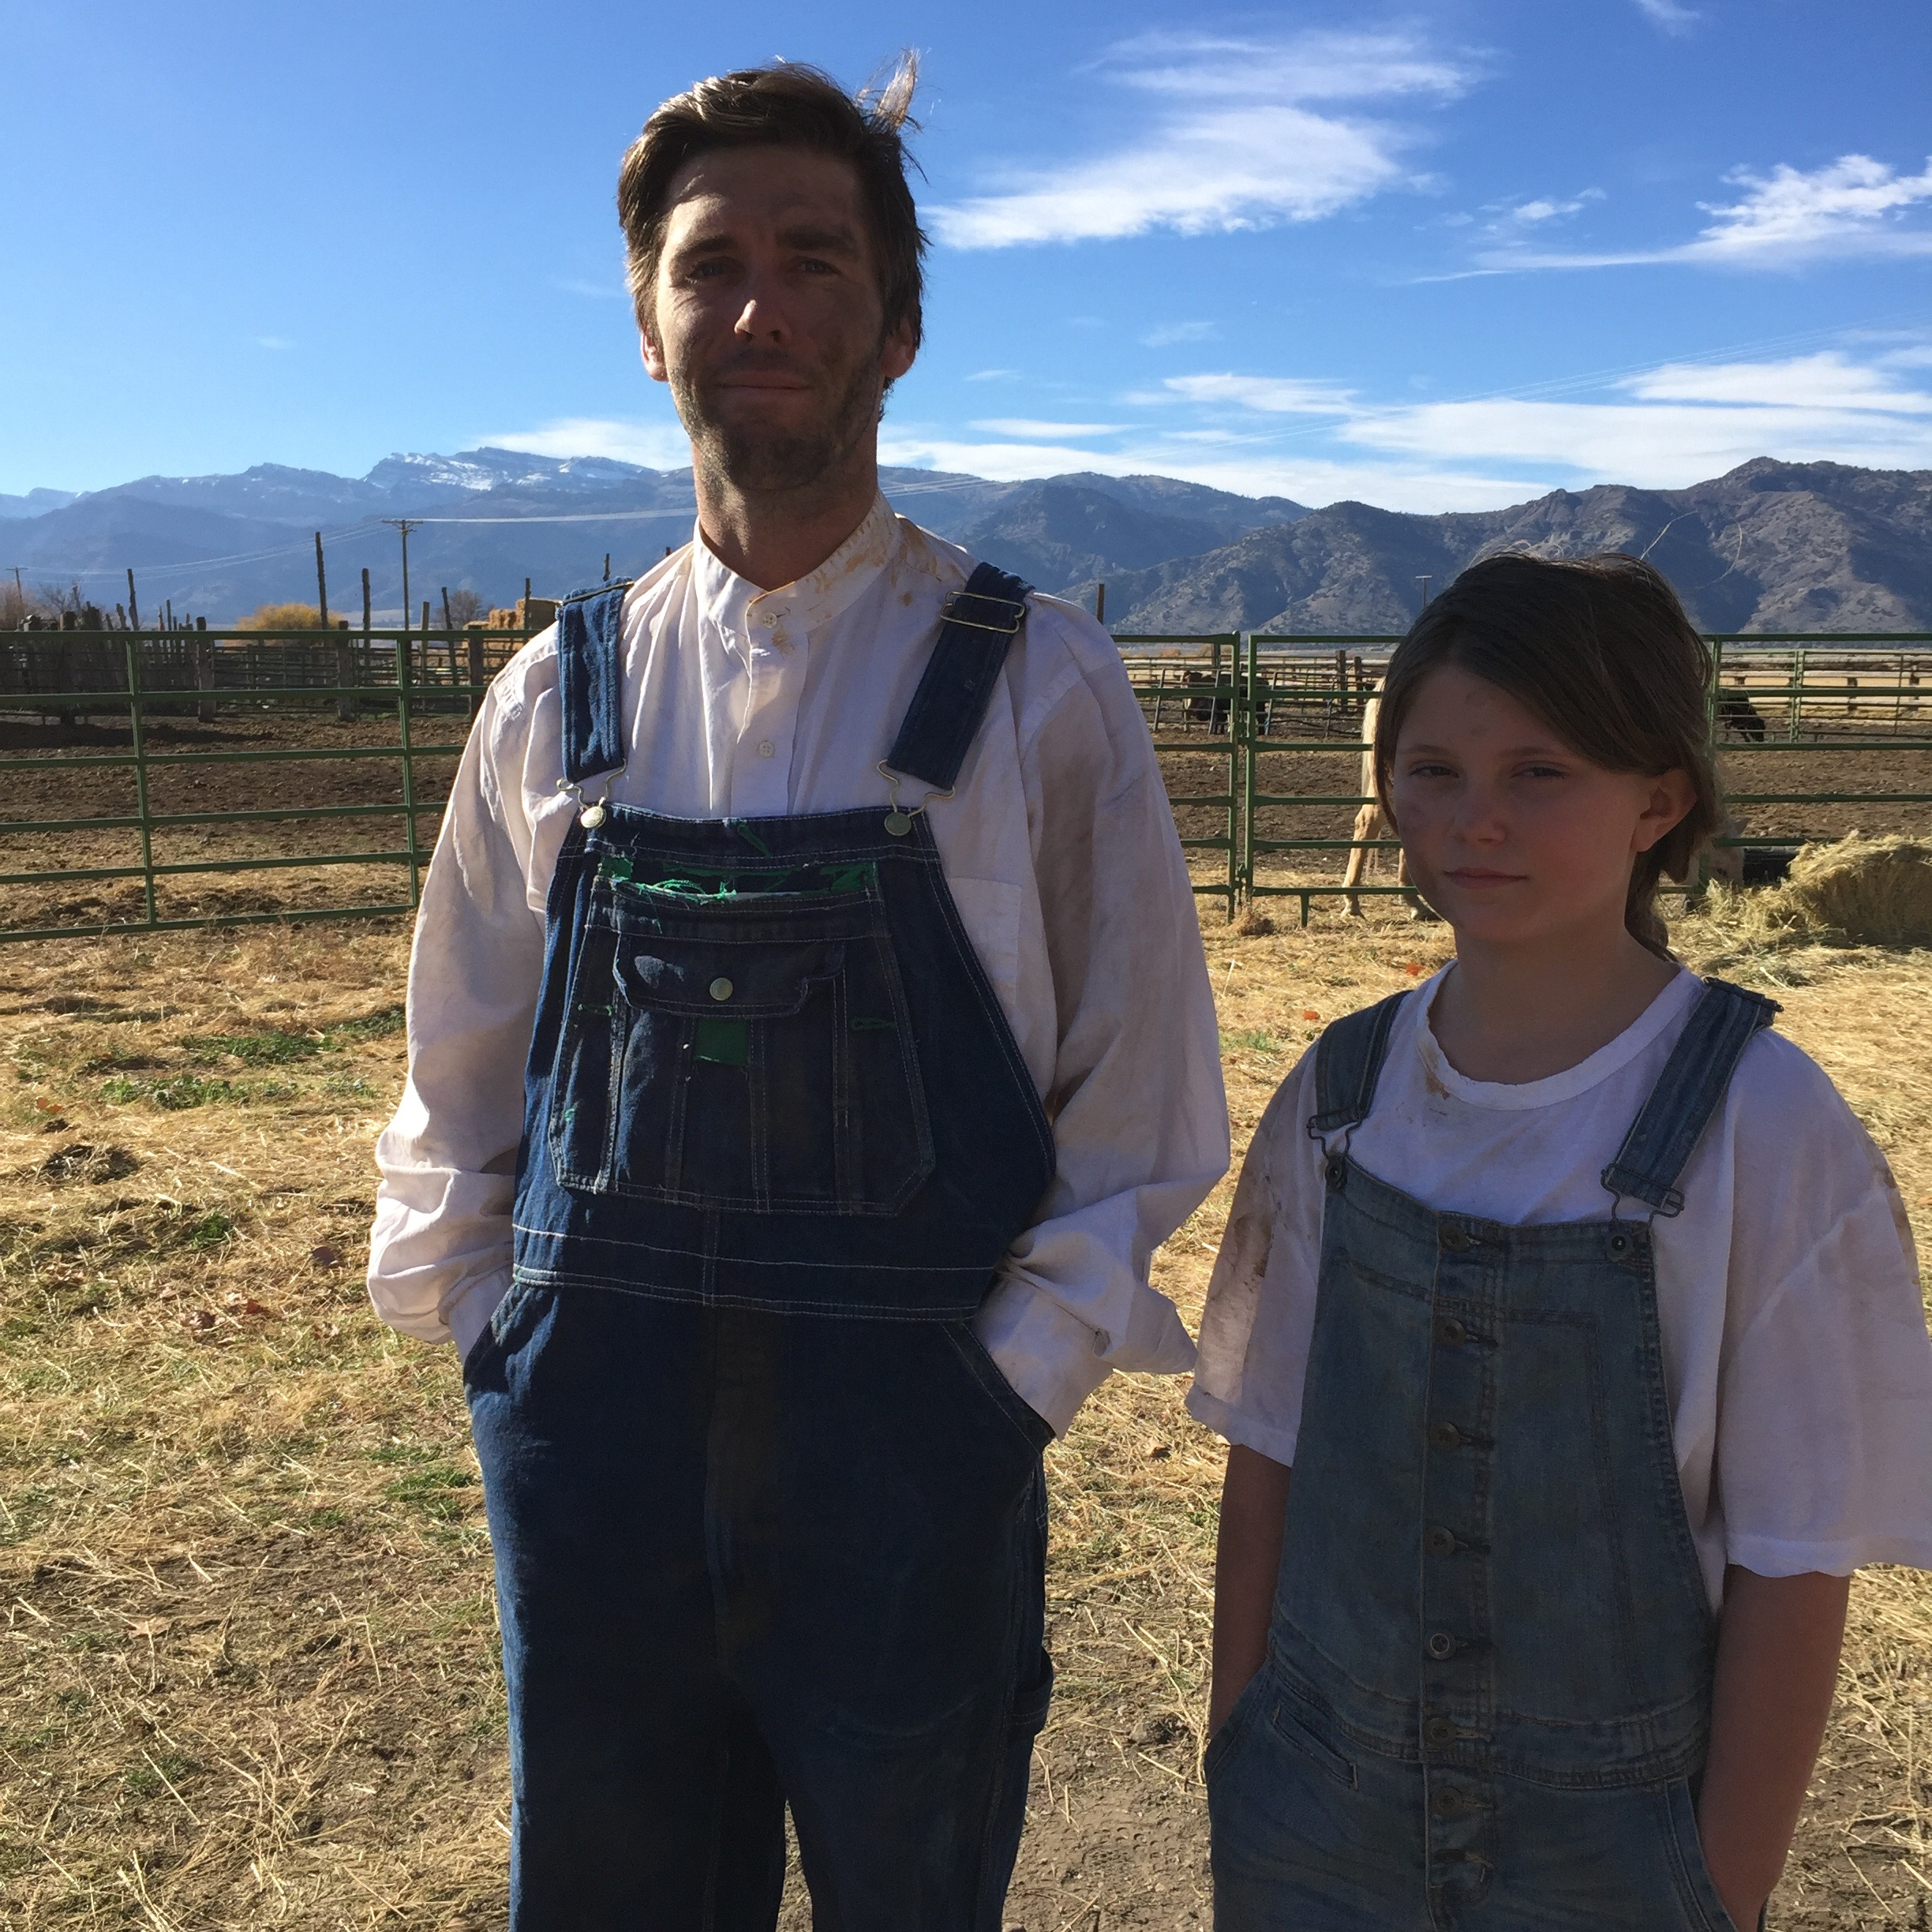 The actors: Keaton and Rylee